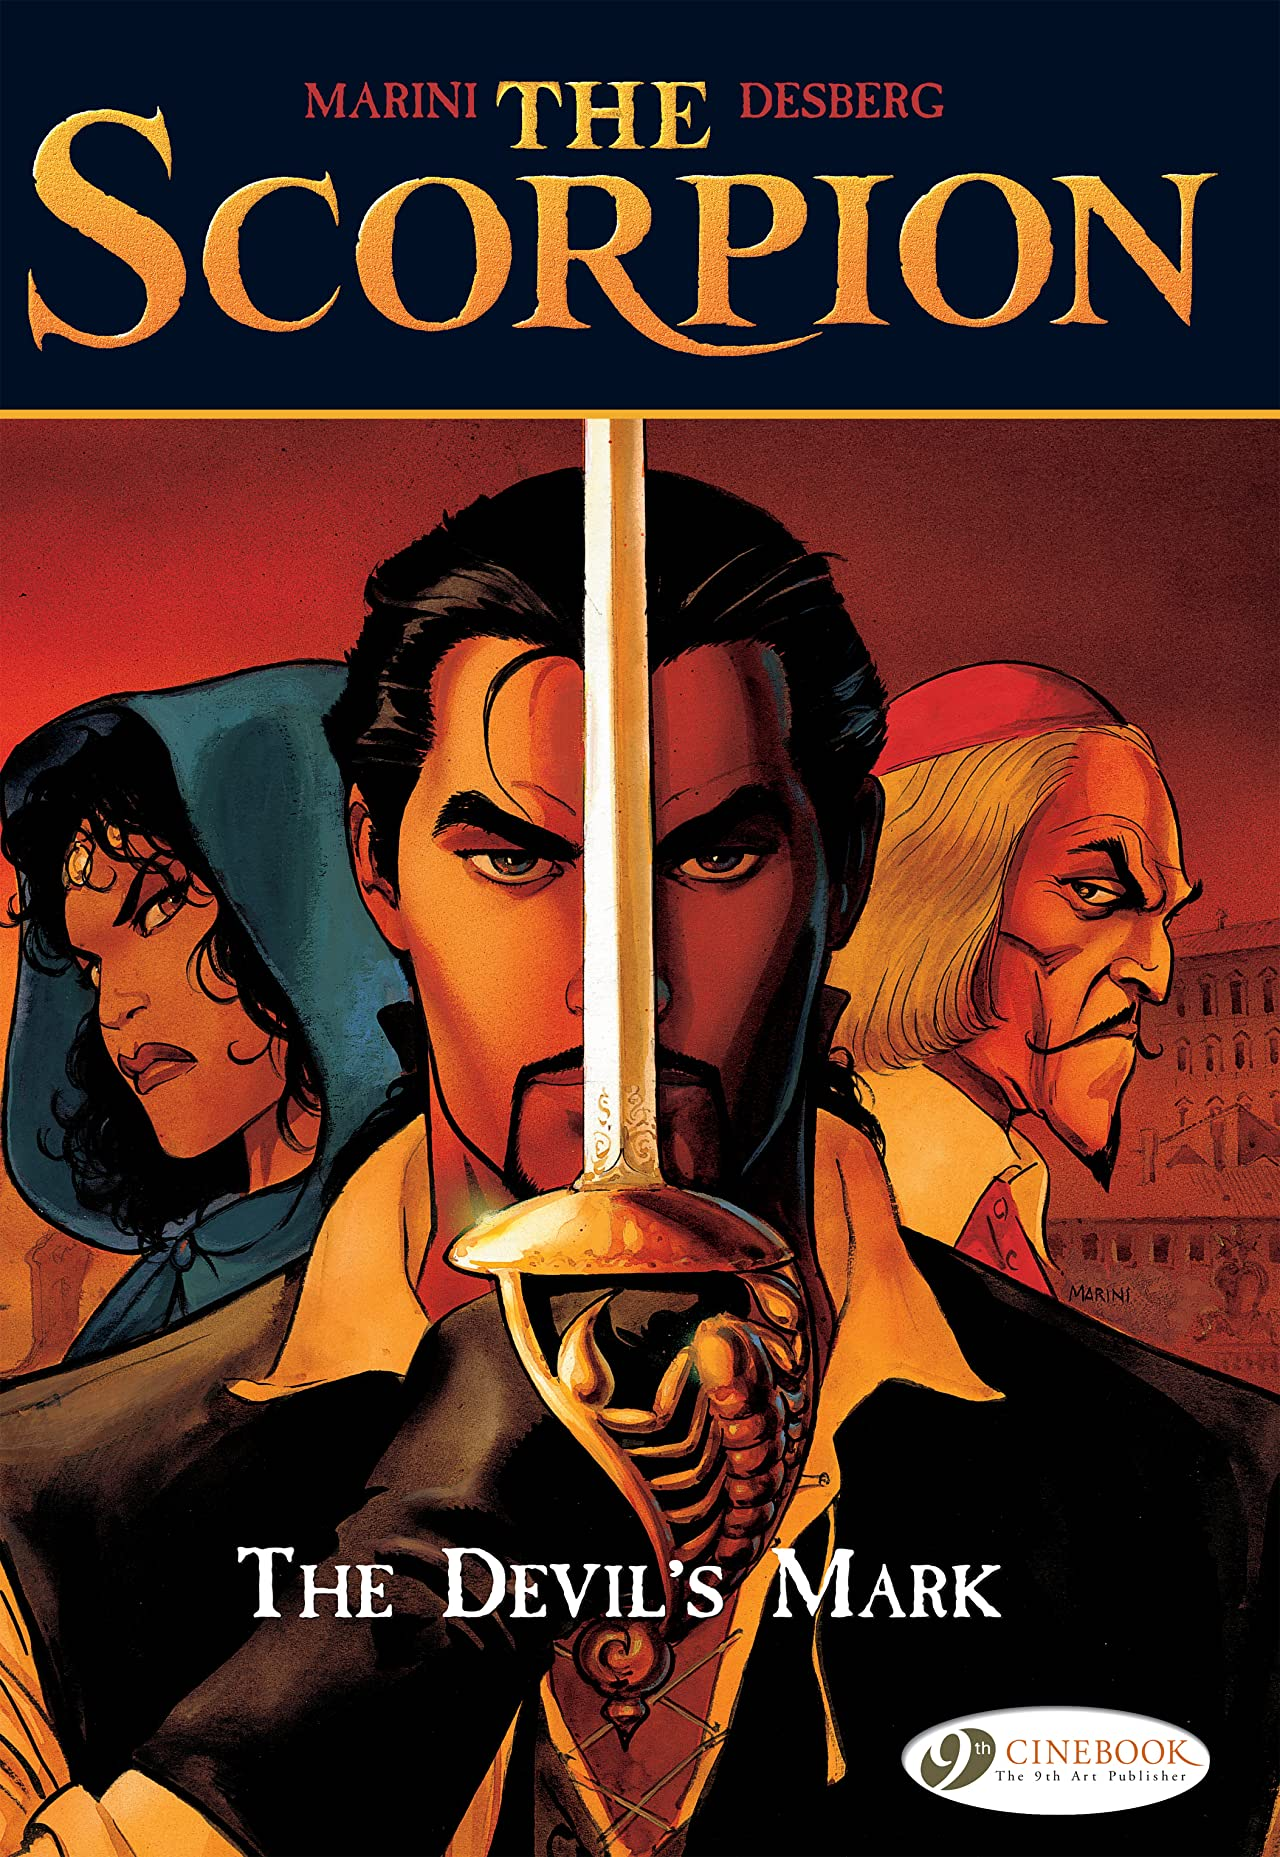 The Scorpion Tome 1: The Devil's Mark